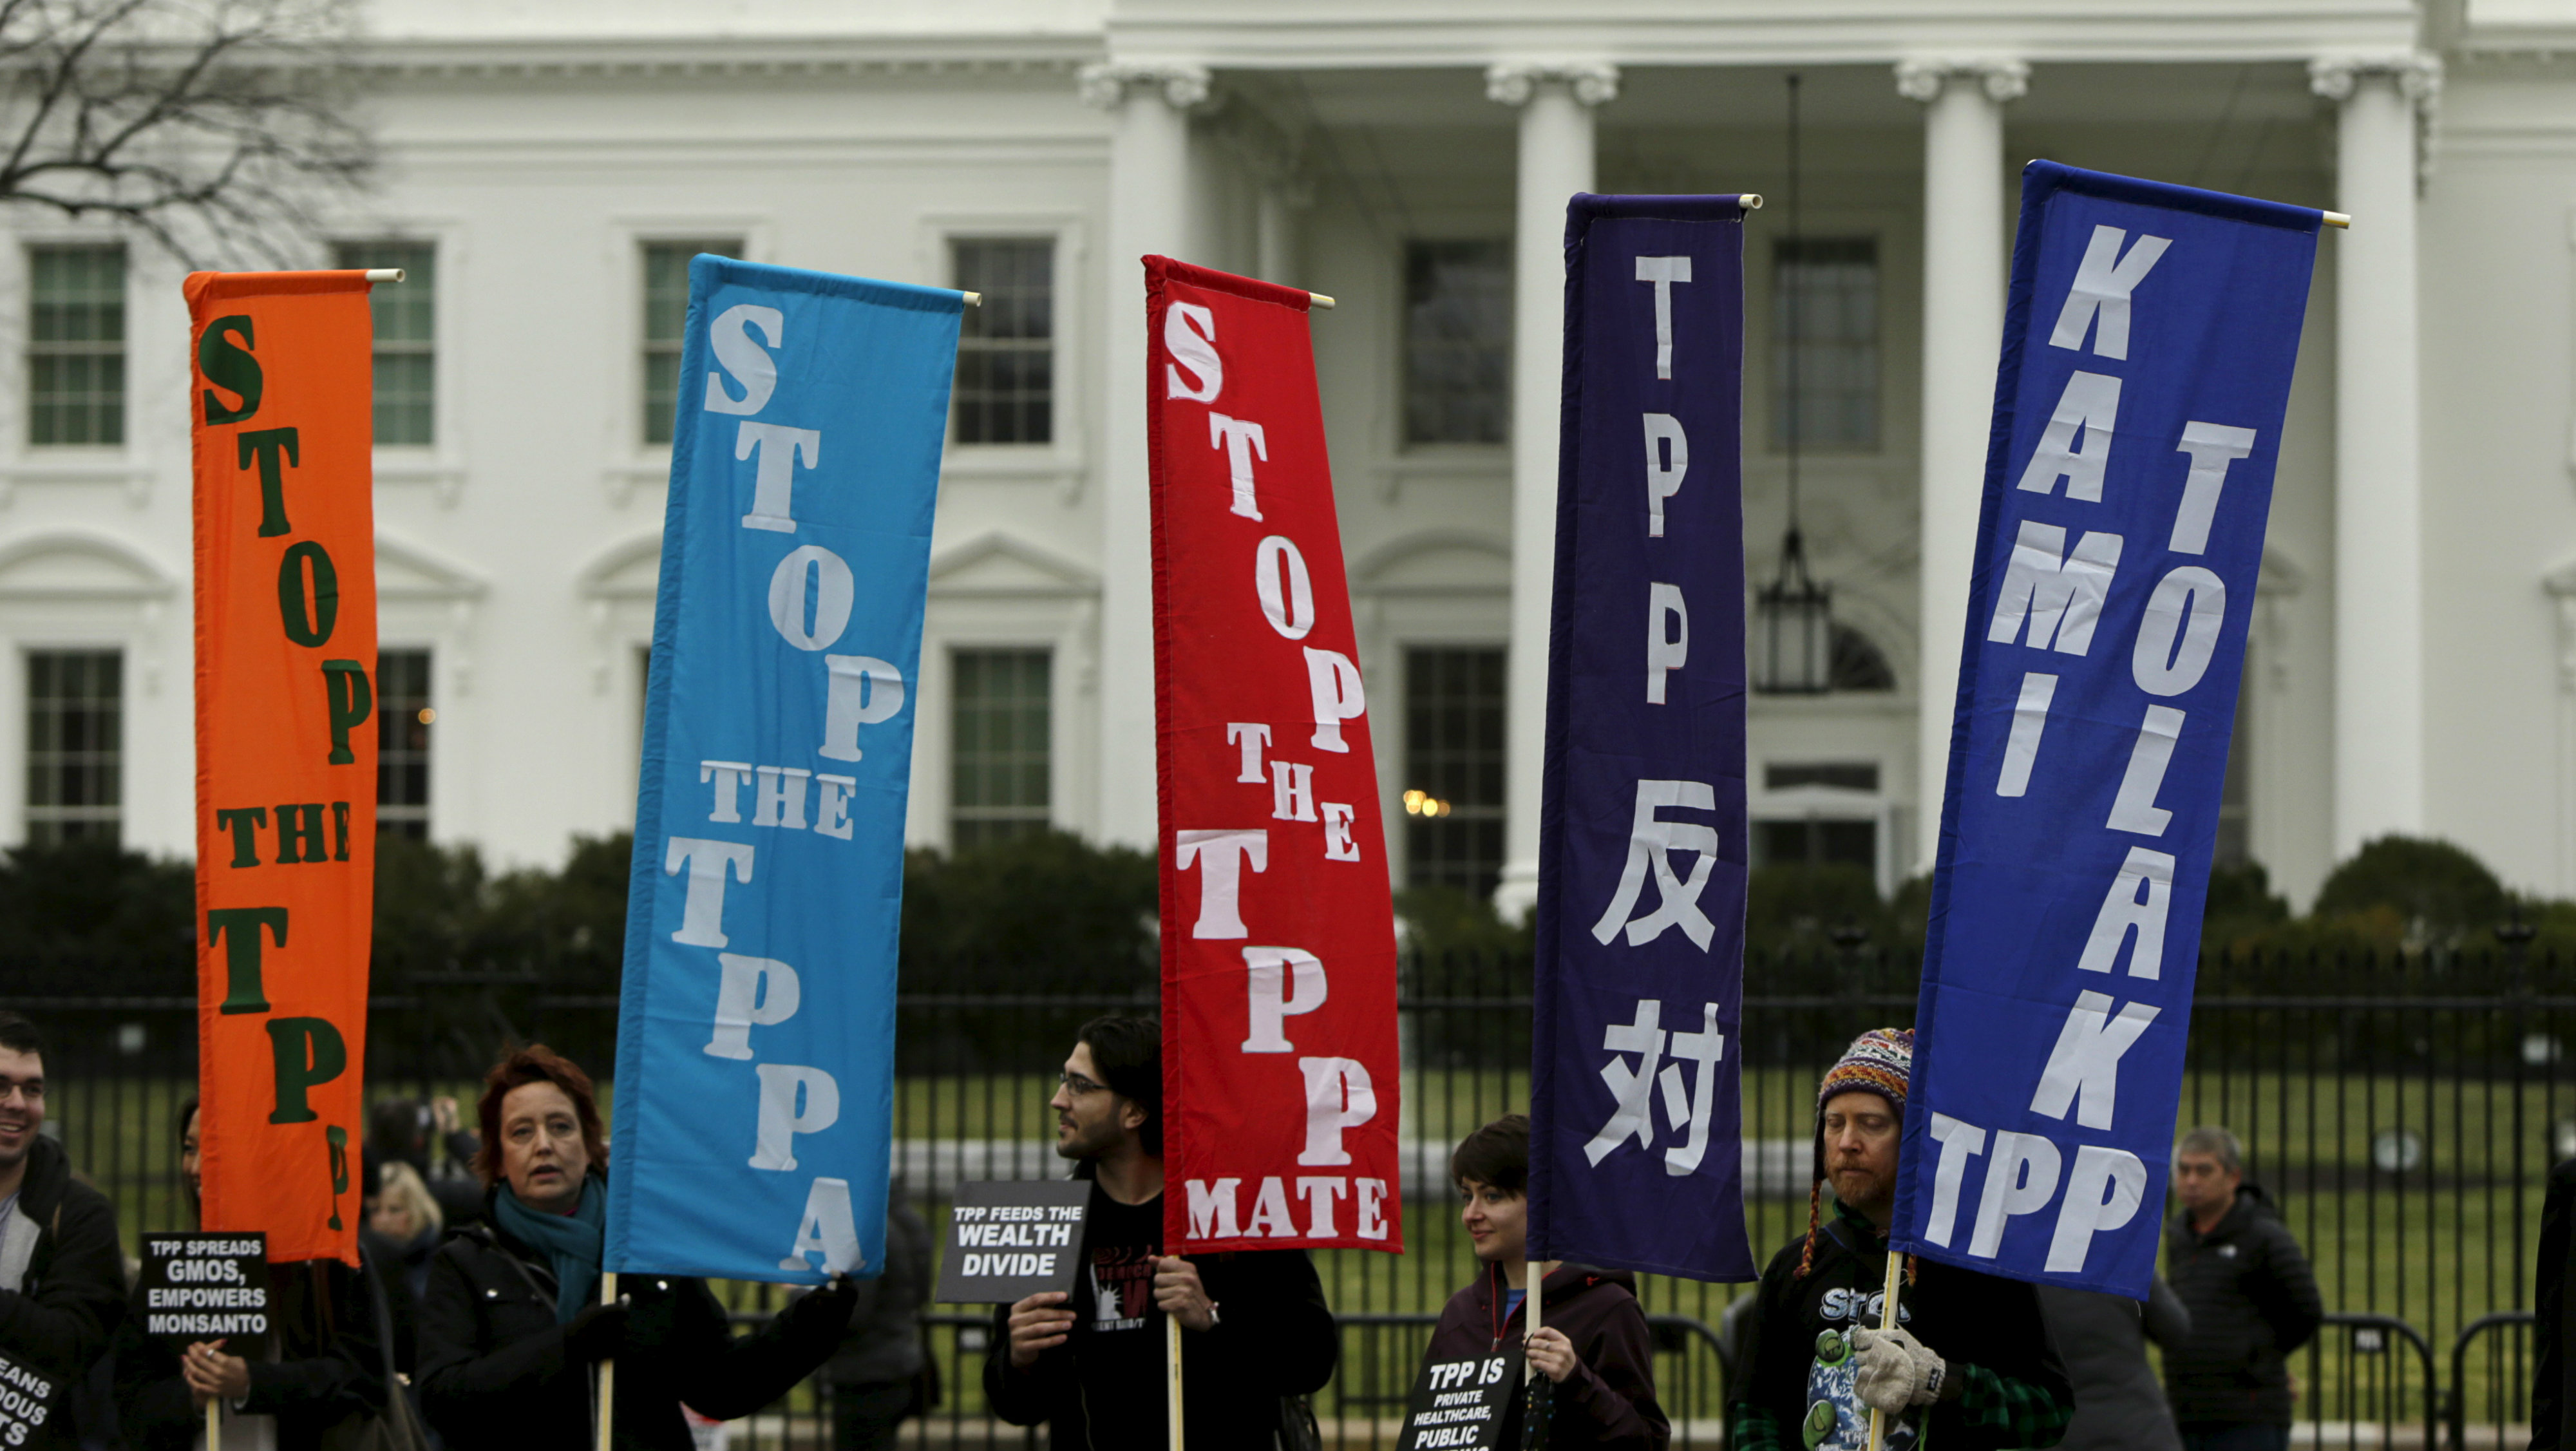 Opponents of the Trans Pacific Partnership (TPP) trade agreement protest outside of the White House in Washington February 3, 2016. REUTERS/Gary Cameron